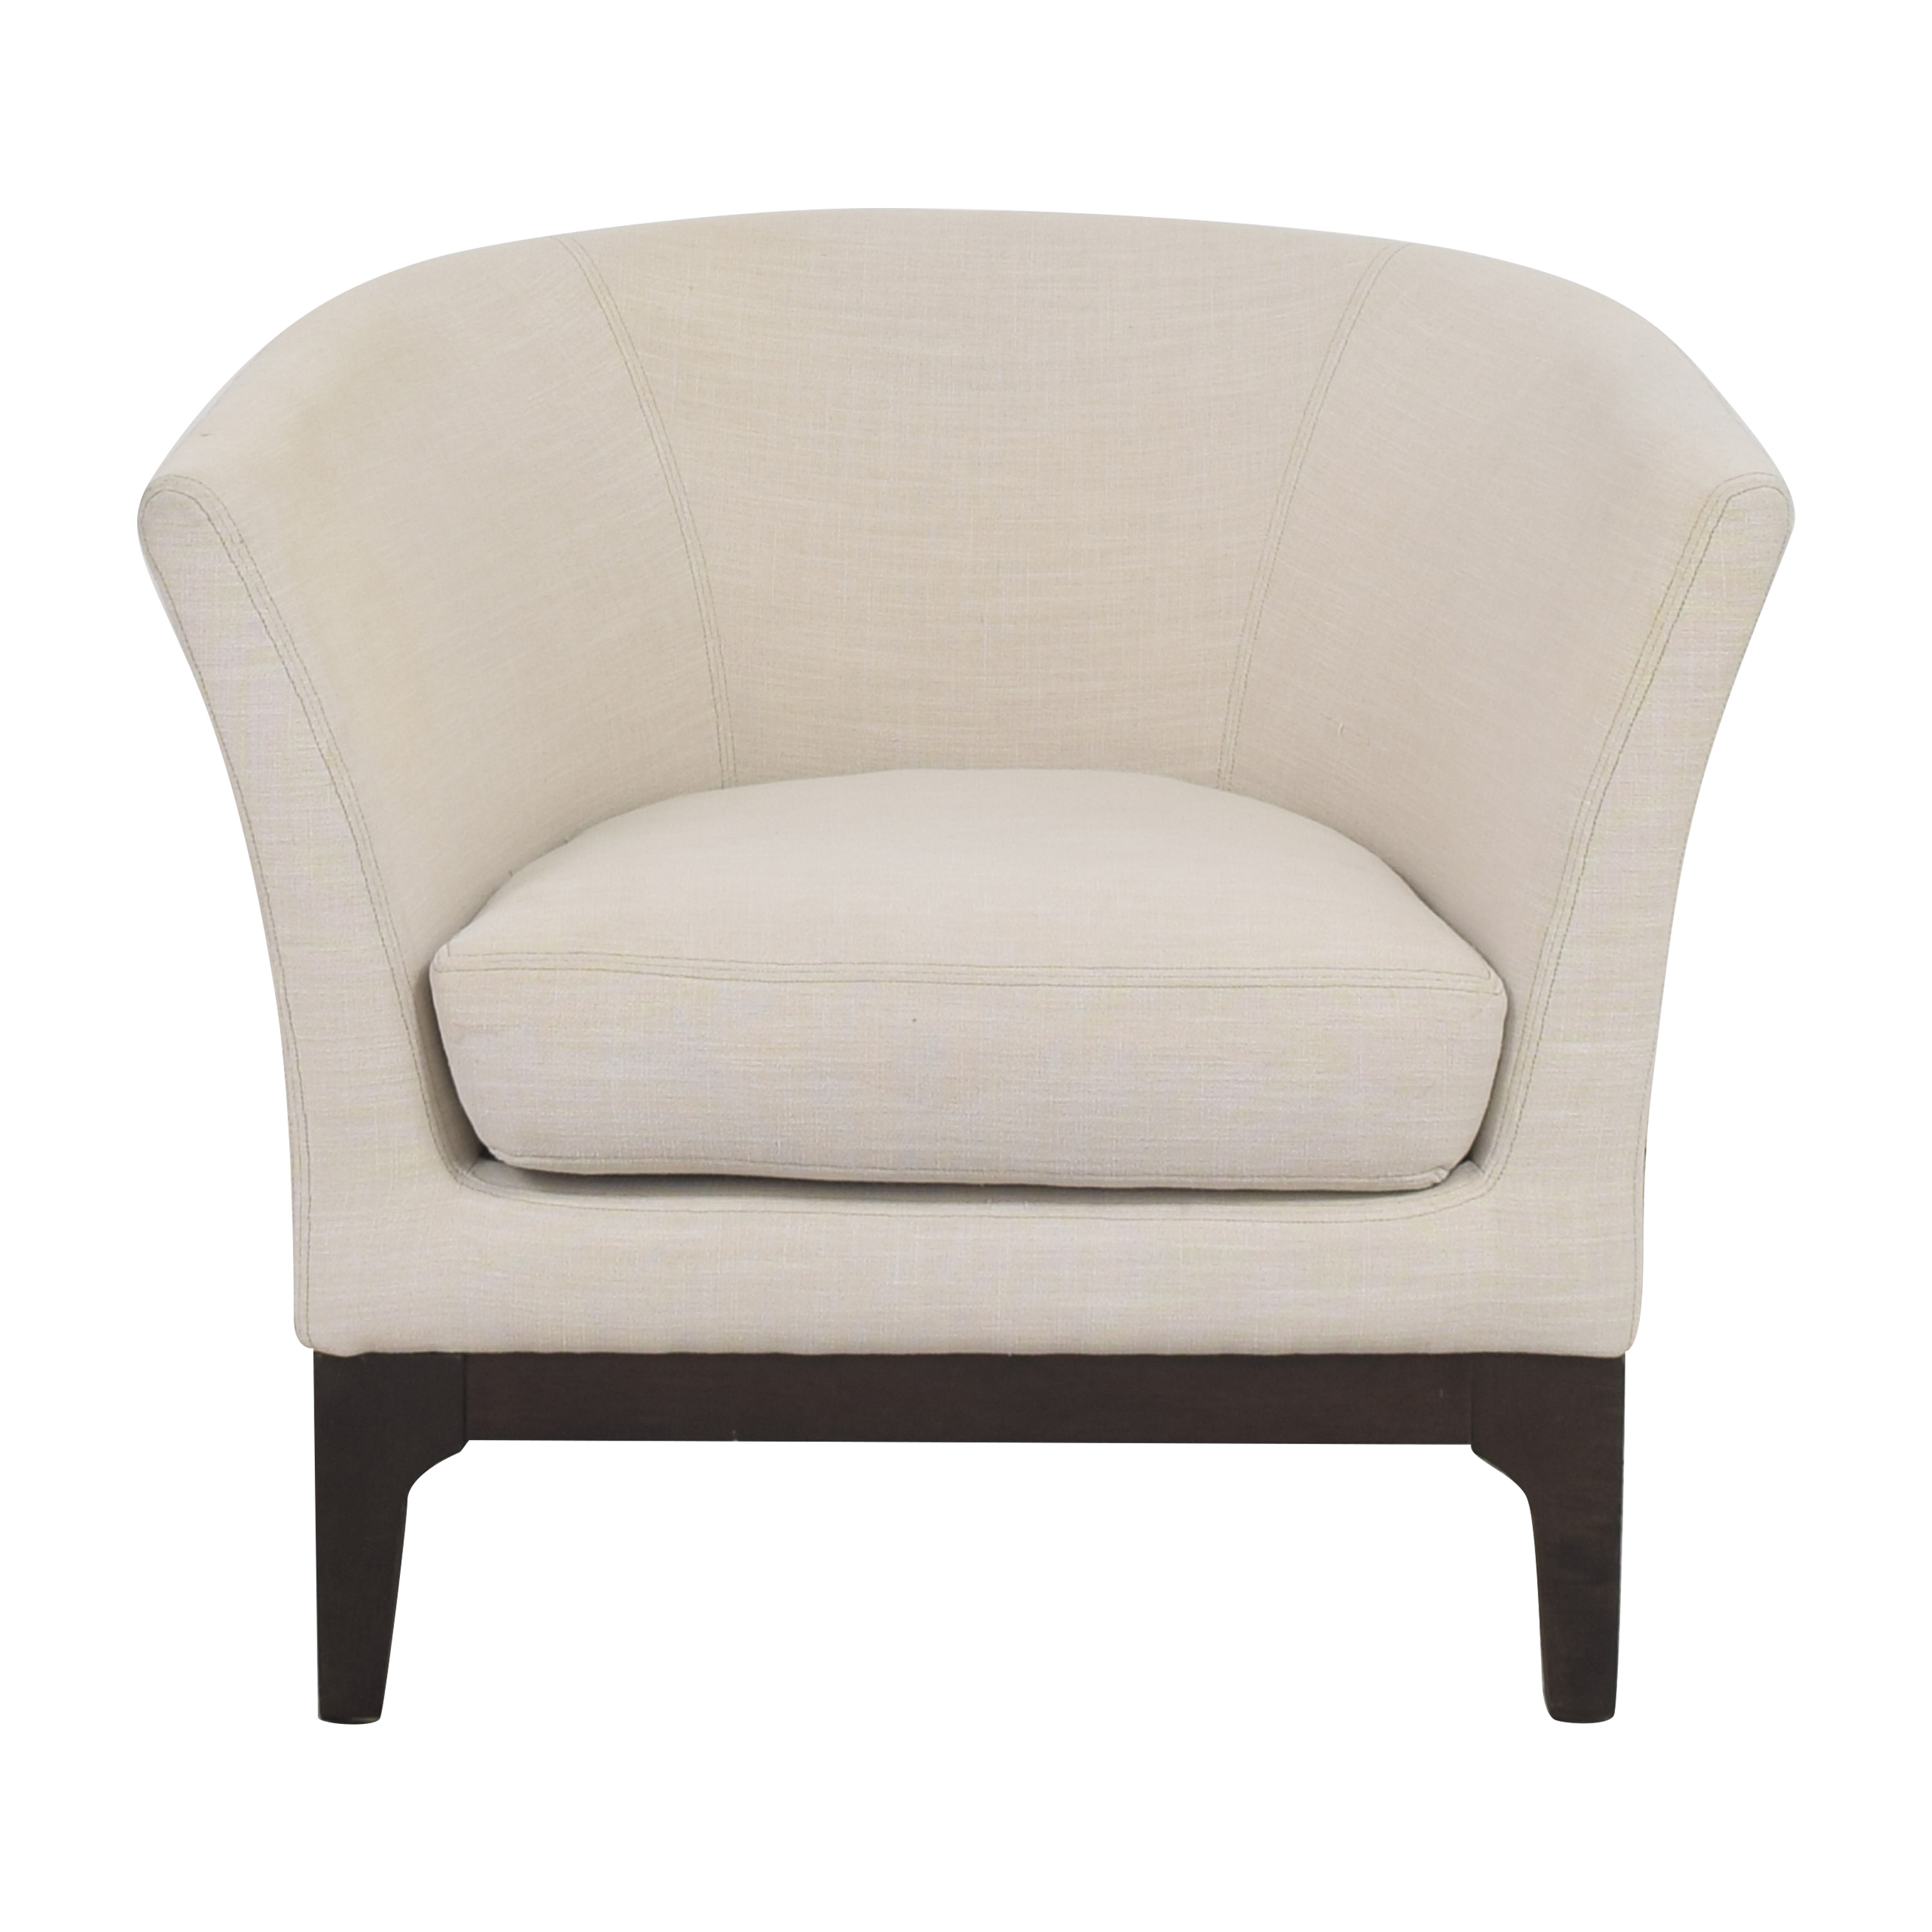 buy West Elm Upholstered Barrel Chair West Elm Chairs